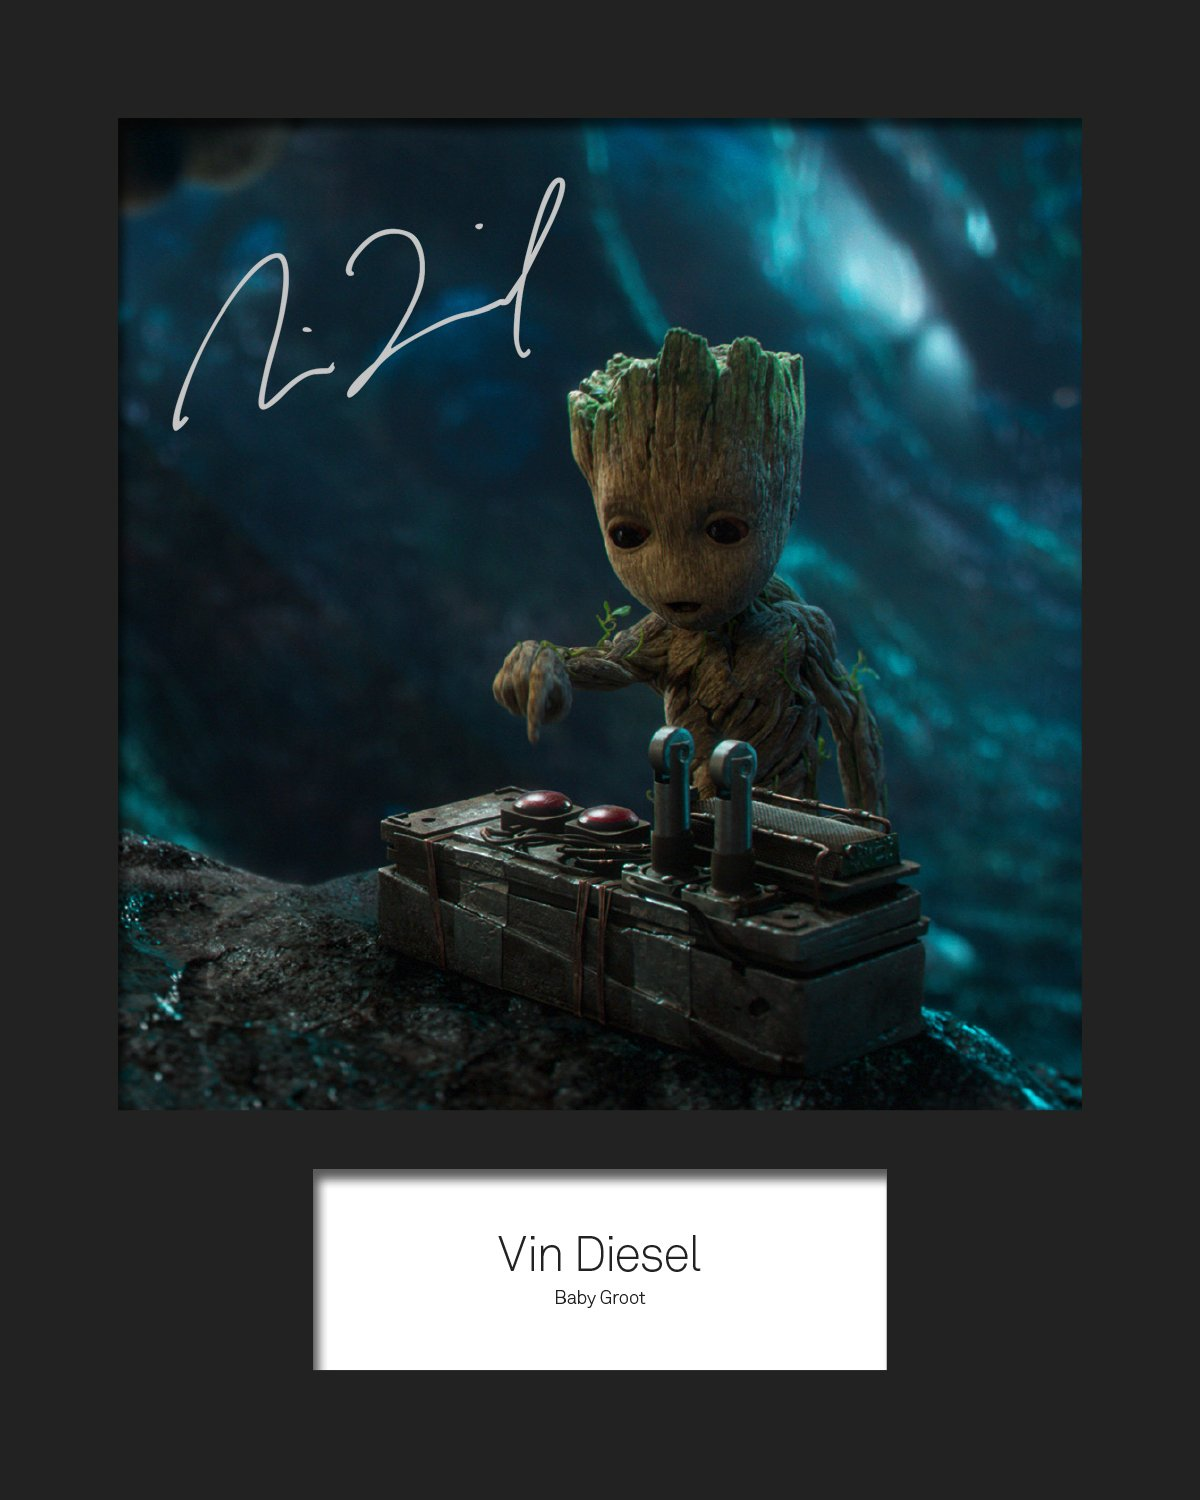 Guardians of the Galaxy Vol 2, Vin Diesel, Baby Groot # 3  Signiert Foto 10  x 8  drucken FRAME SMART